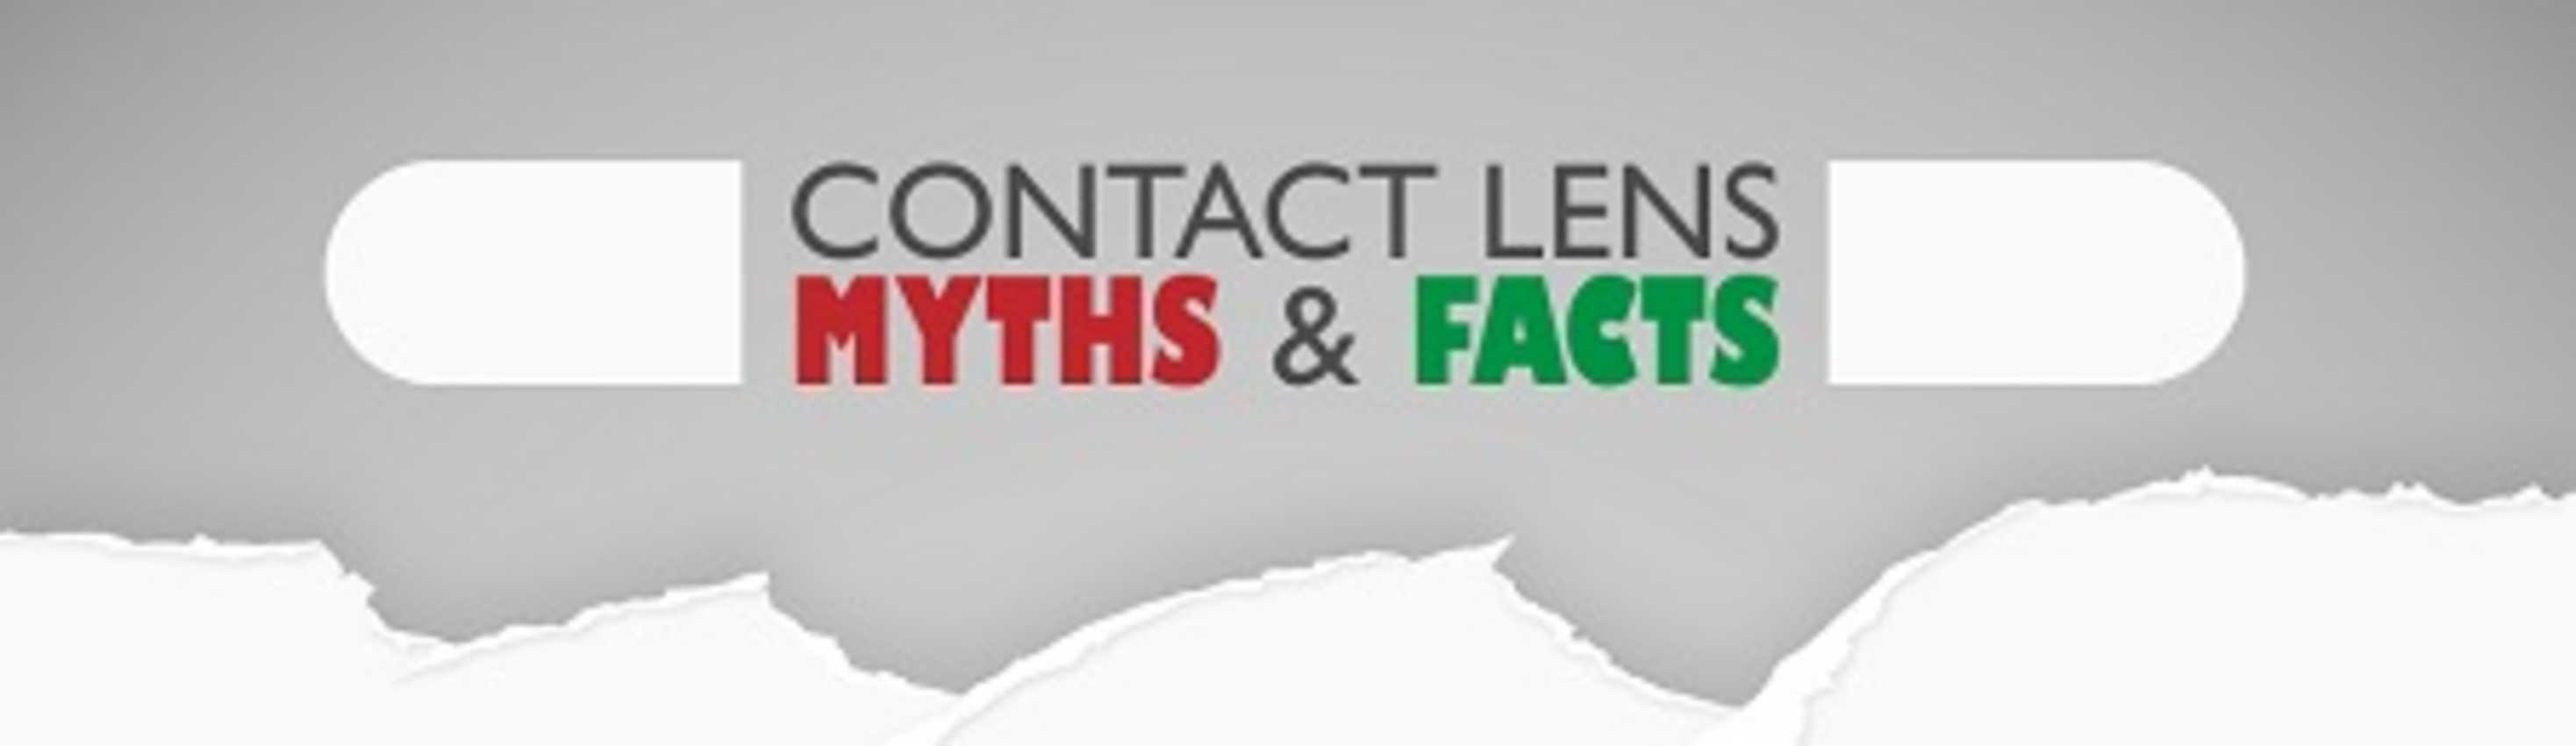 Contact Lenses Myths & Facts